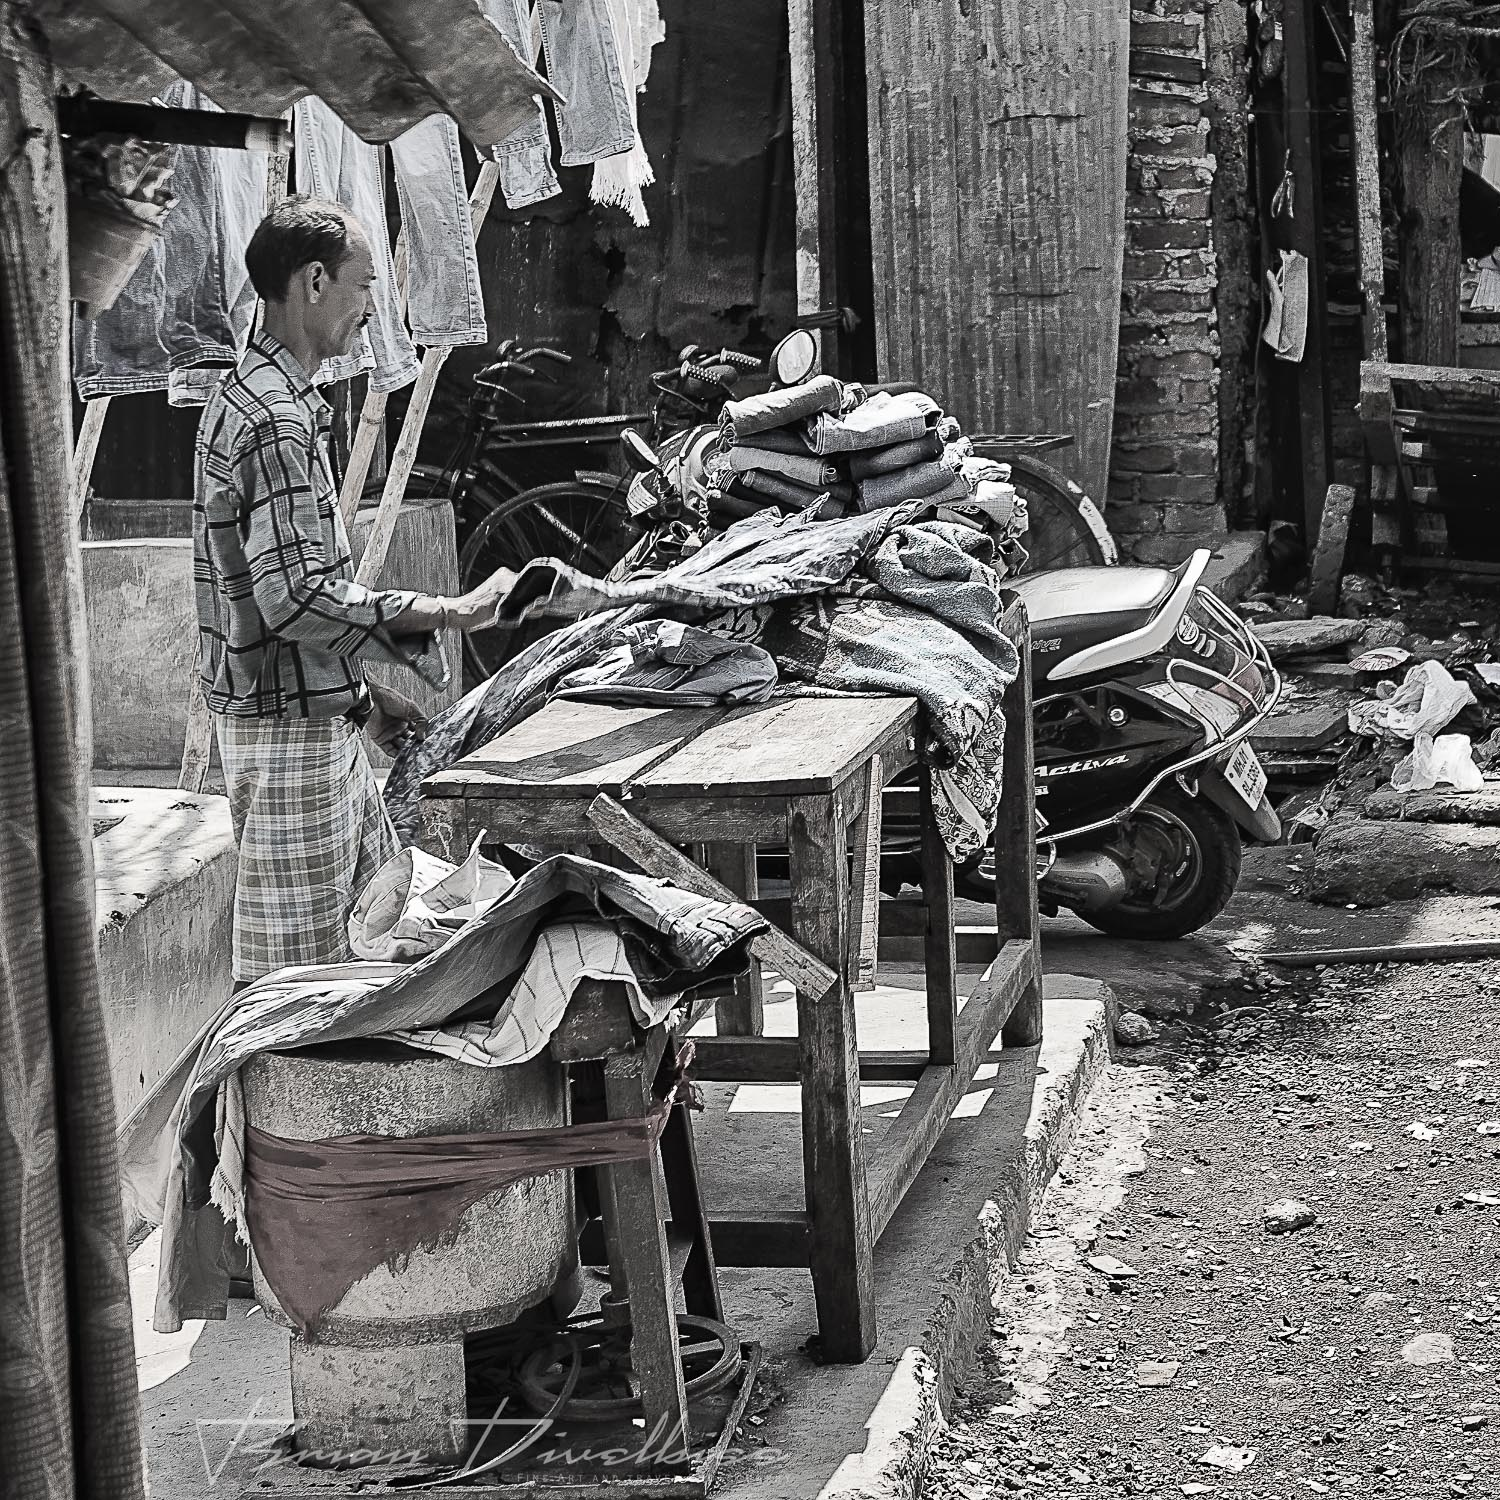 Textile worker with table of fabric at Dhobi Ghat in Mumbai, India in black and white.